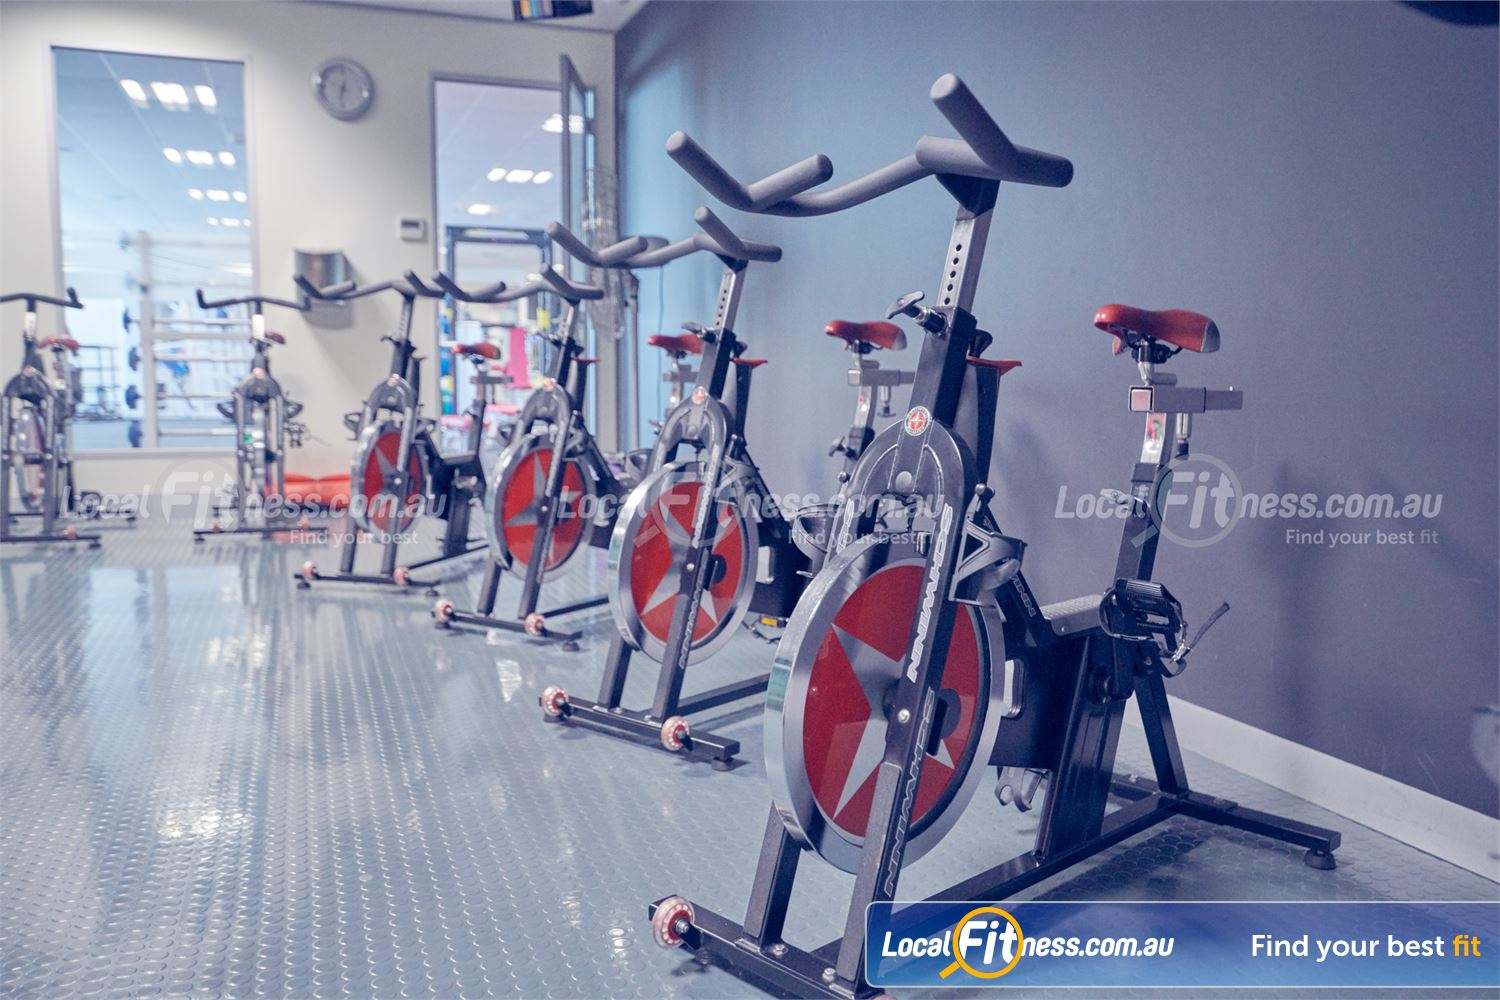 Fernwood Fitness Near Deer Park The dedicated Cairnlea spin cycle studio.